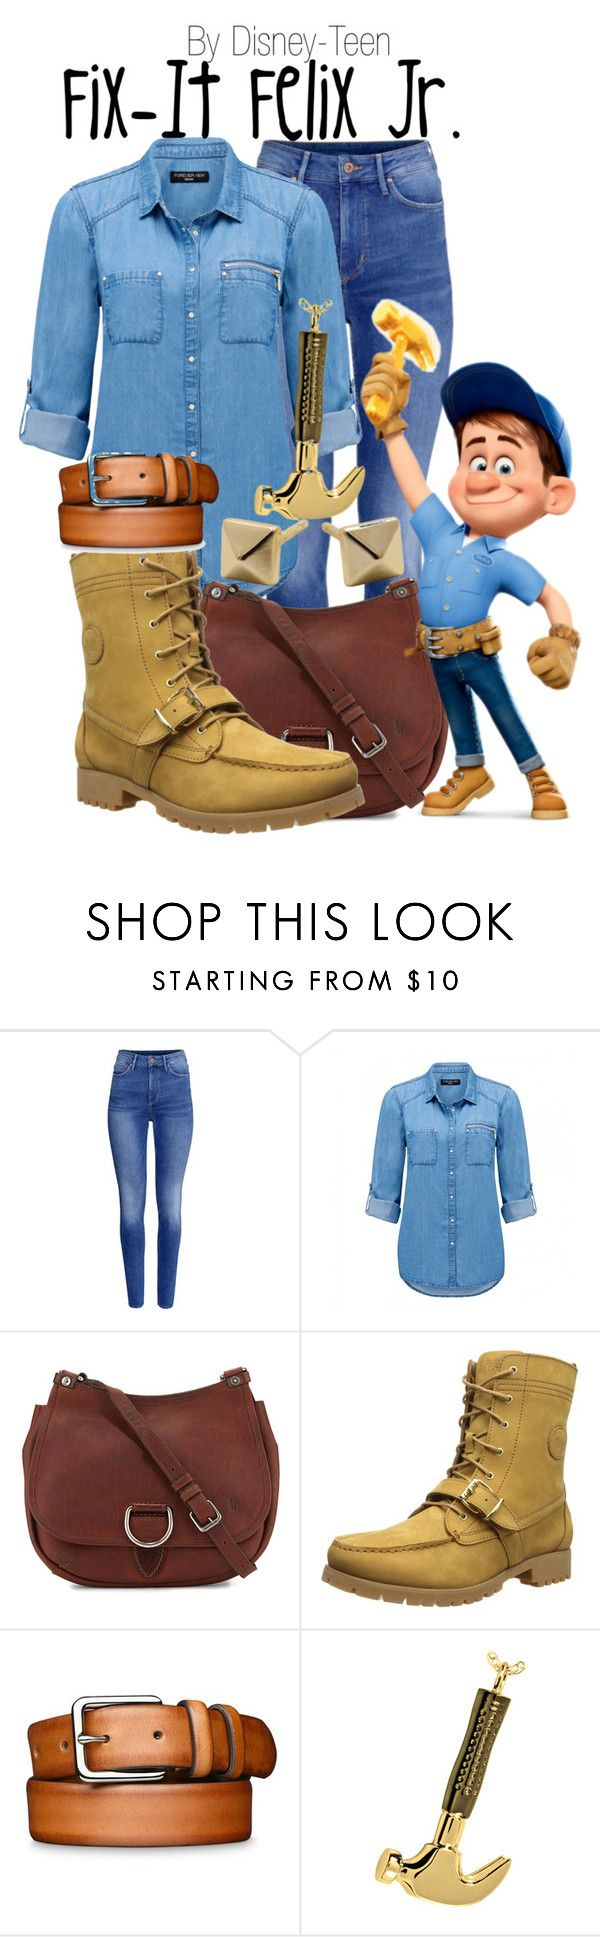 """Fix-It Felix Jr."" by disney-teen ❤ liked on Polyvore featuring H&M, Forever New, Frye, Felix, Lauren Ralph Lauren and Alexandra Beth Designs"